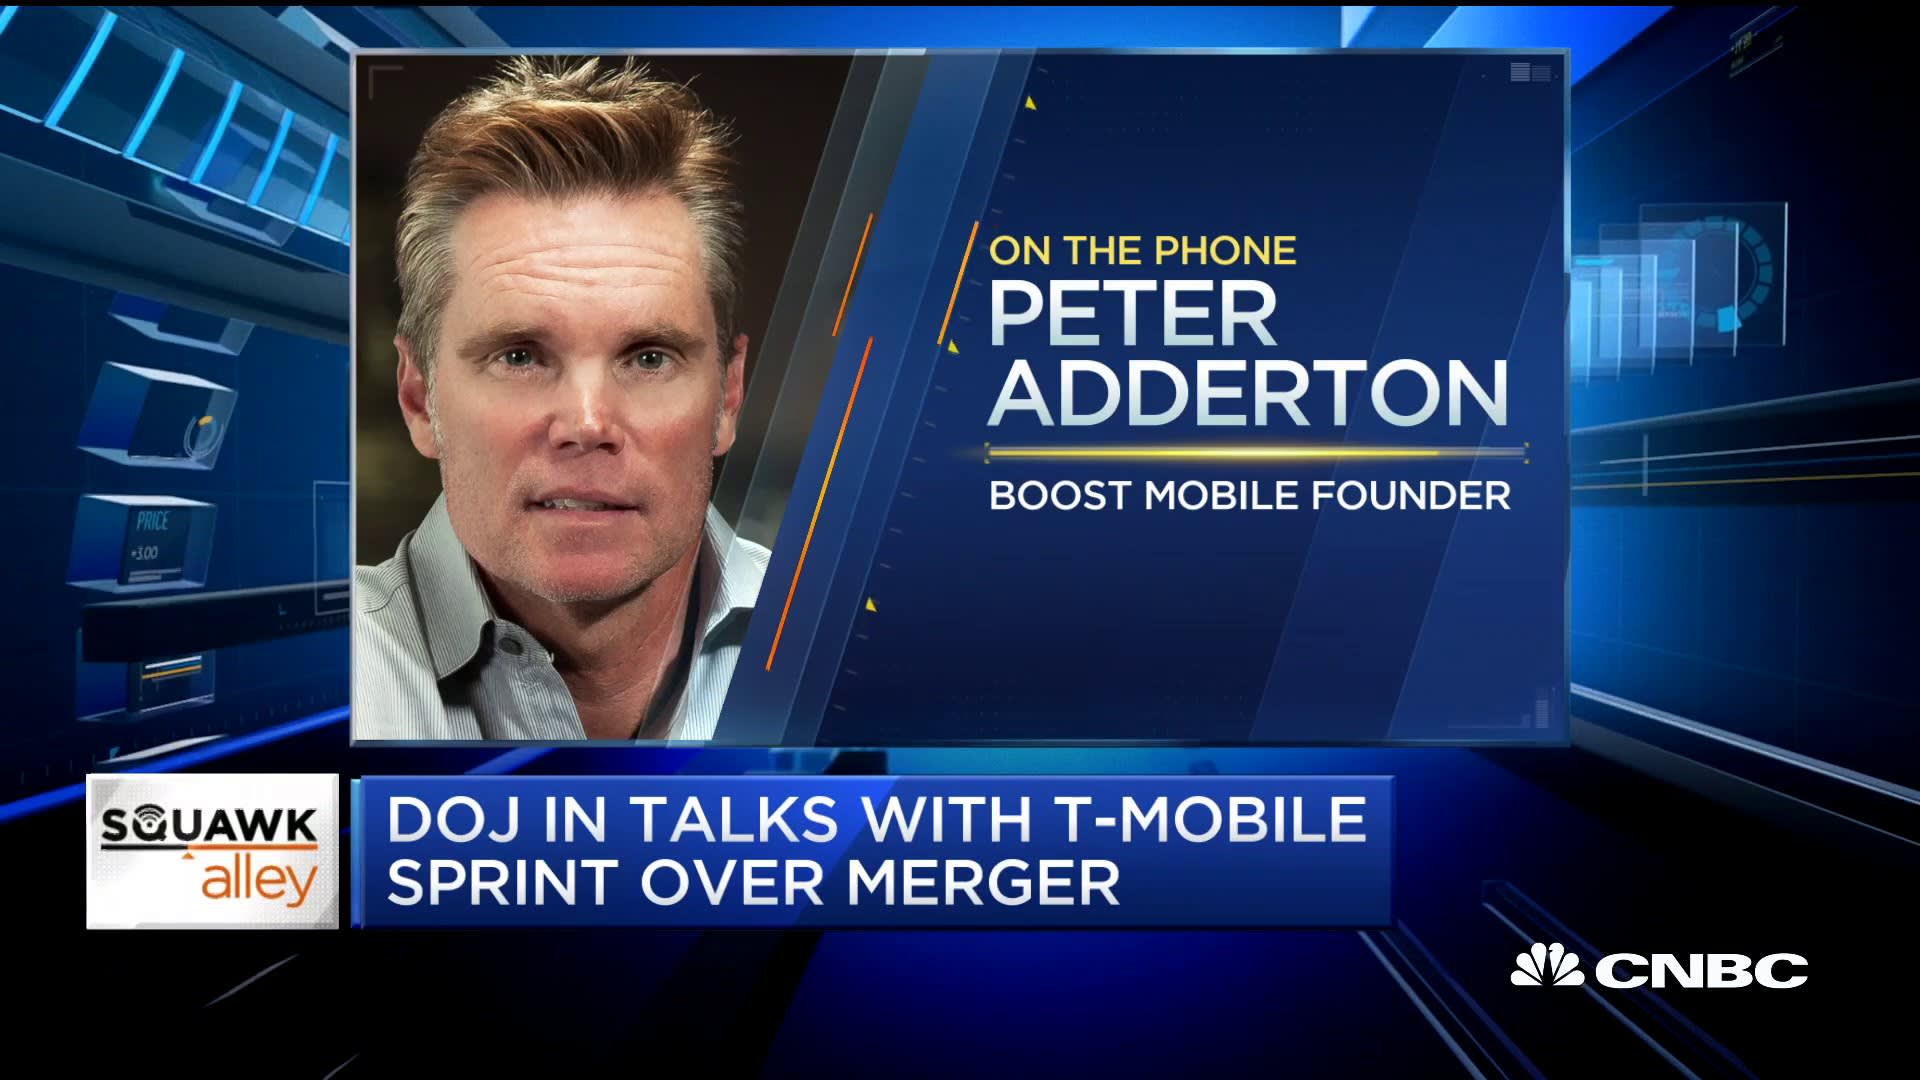 Boost Mobile founder says he'd buy unit back if the Sprint-T-Mobile tie-up gave him good wholesale deal